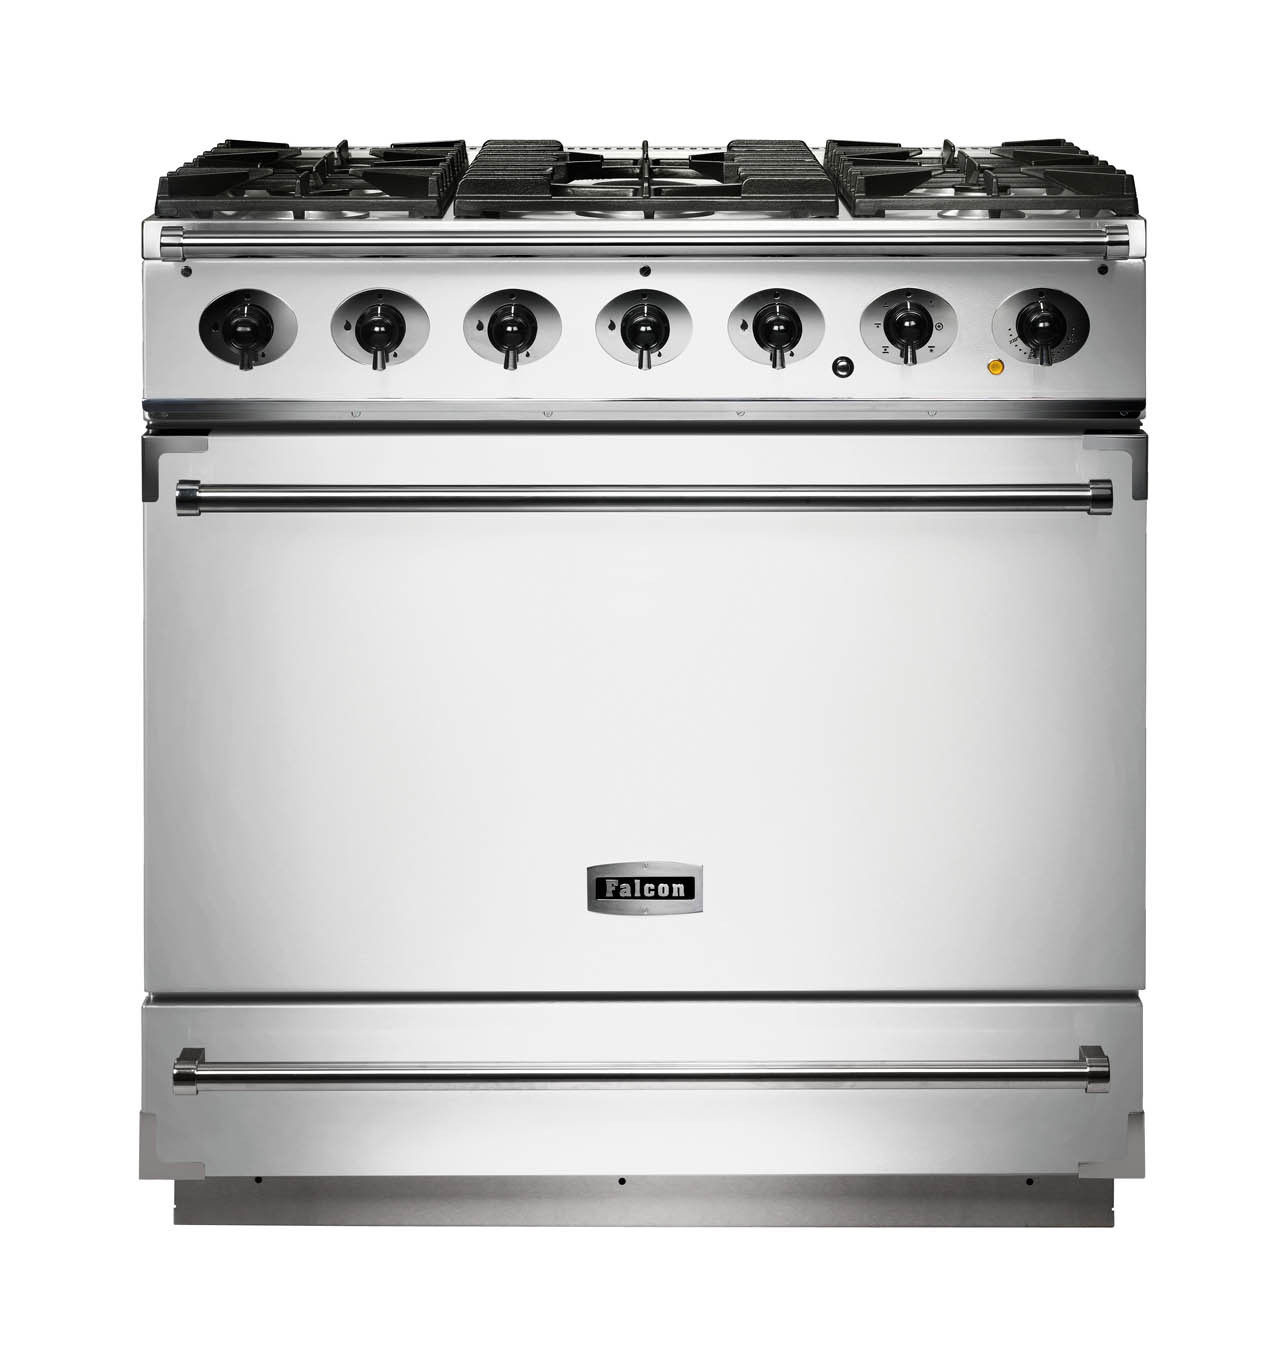 Falcon 900S Dual Fuel Ice White Range Cooker with Matt Pan Supports